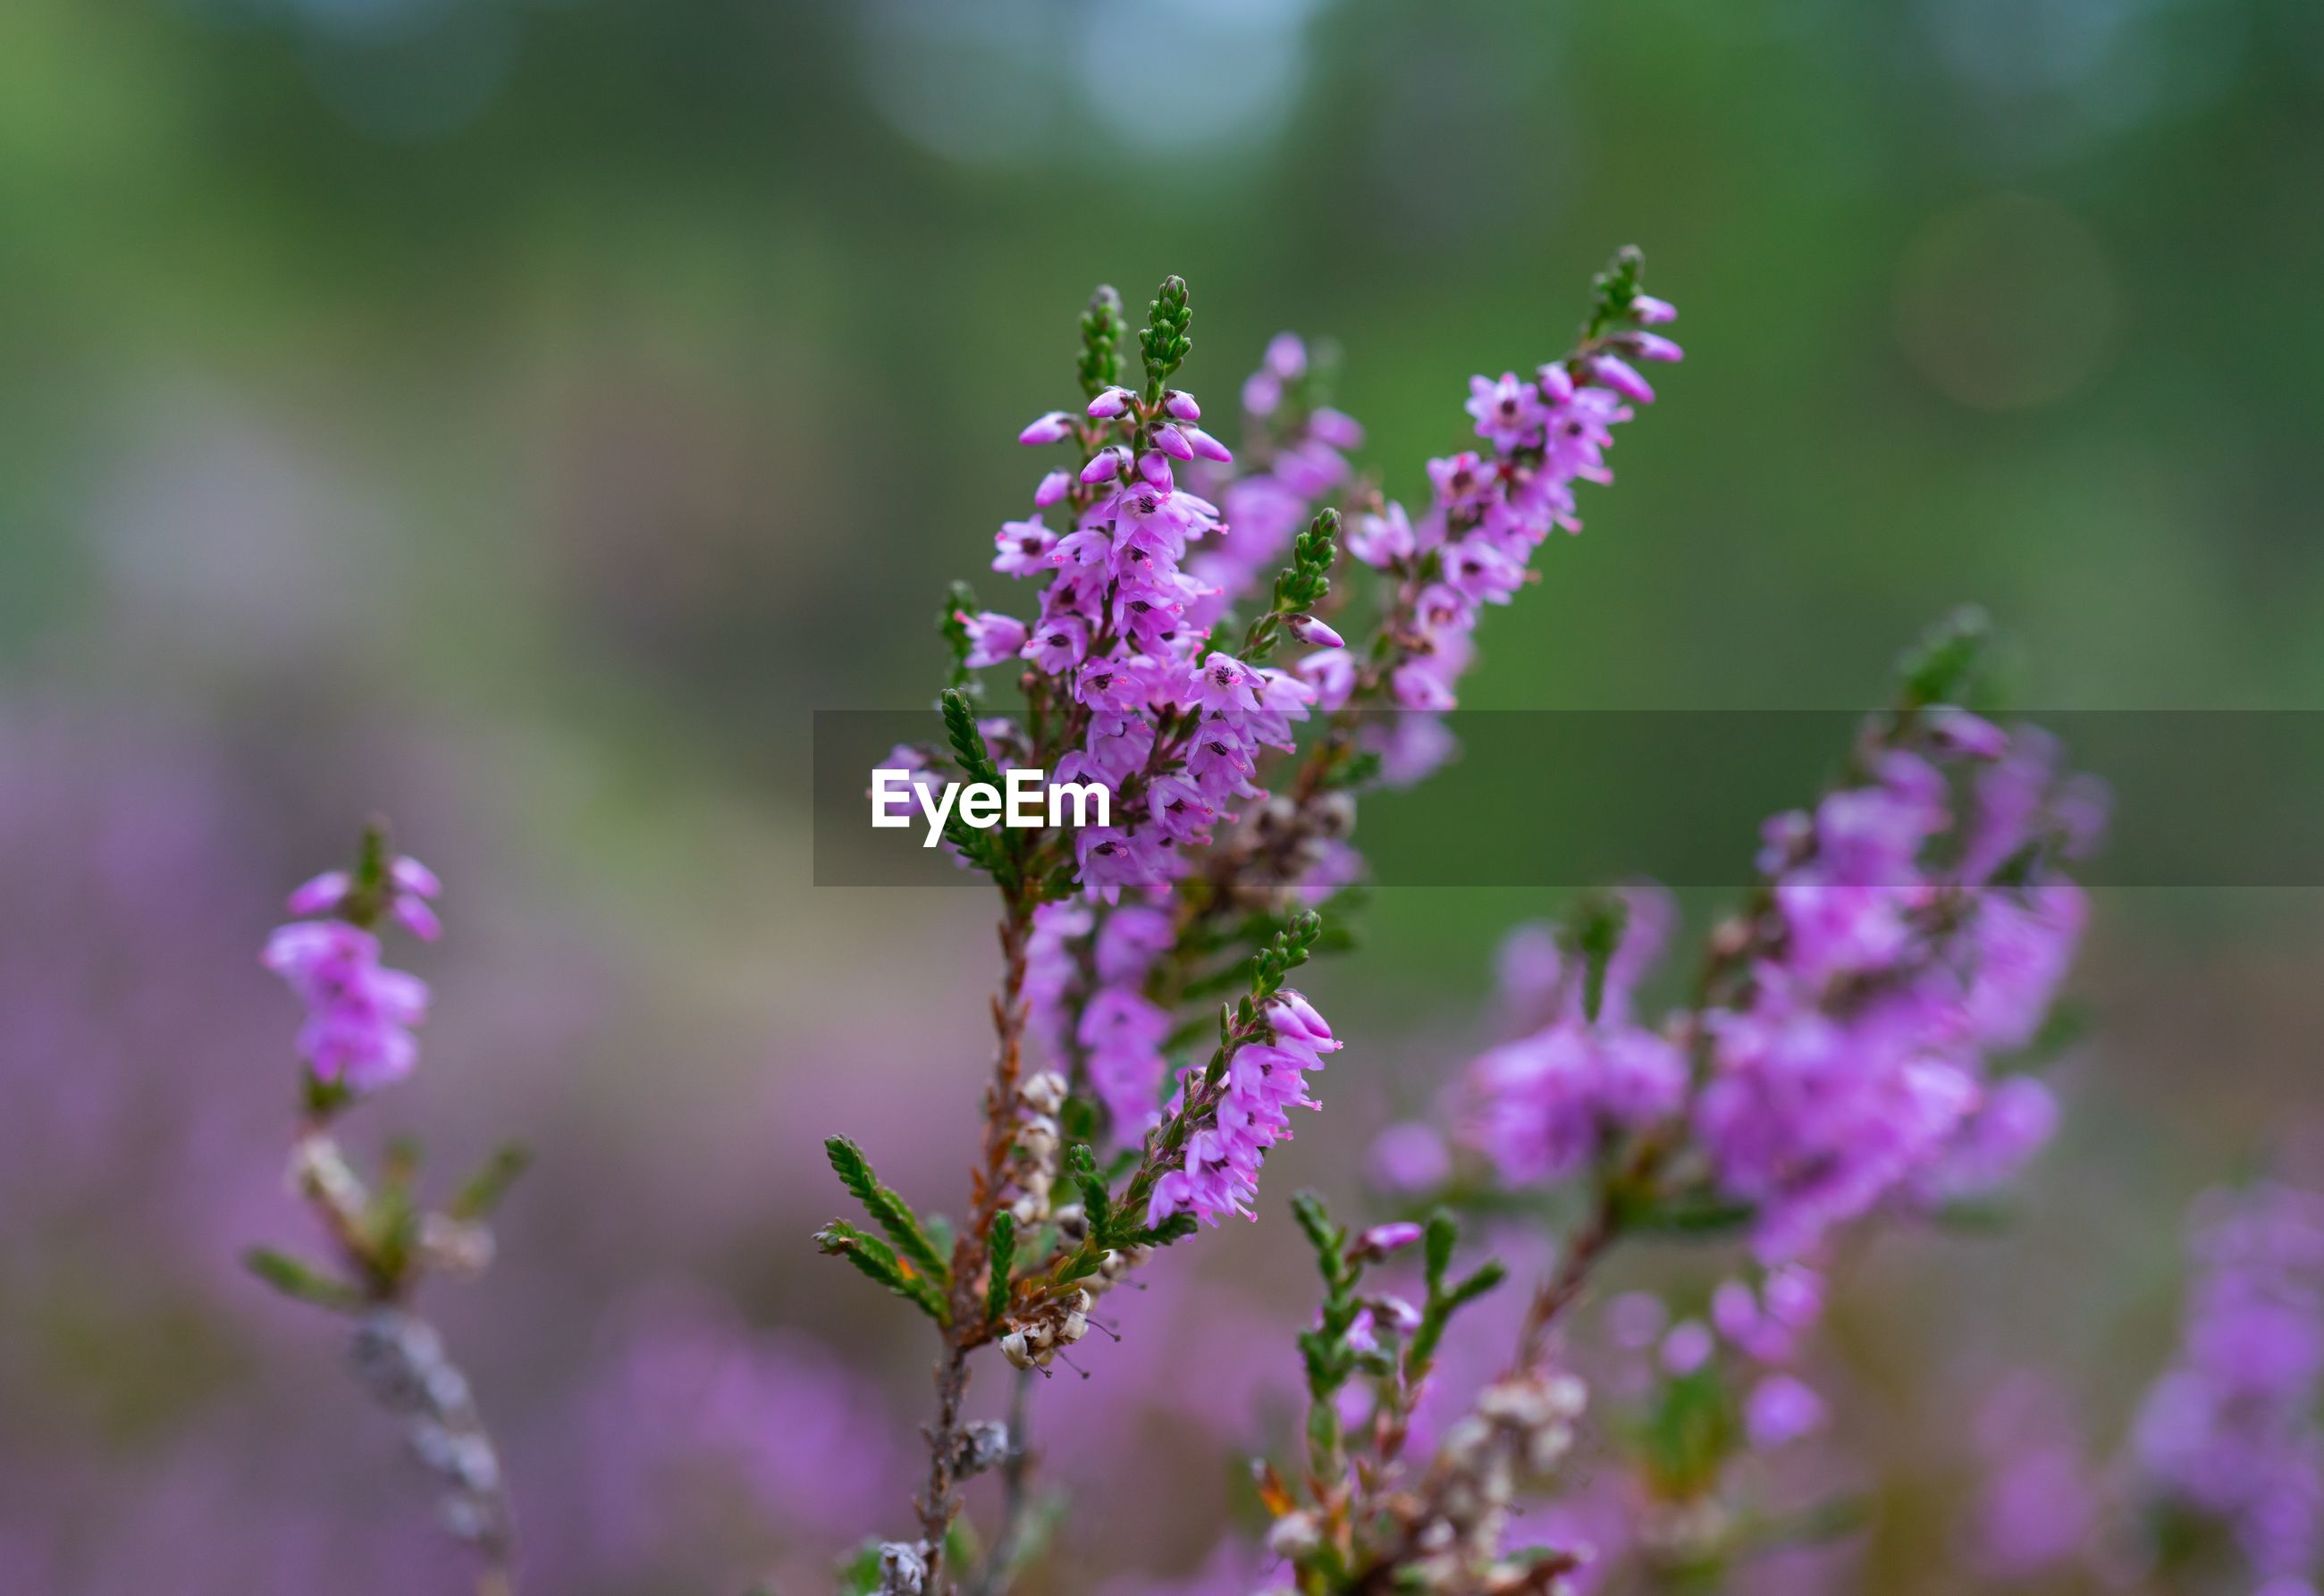 purple, nature, flower, beauty in nature, lavender, focus on foreground, fragility, growth, day, no people, plant, close-up, outdoors, freshness, blooming, flower head